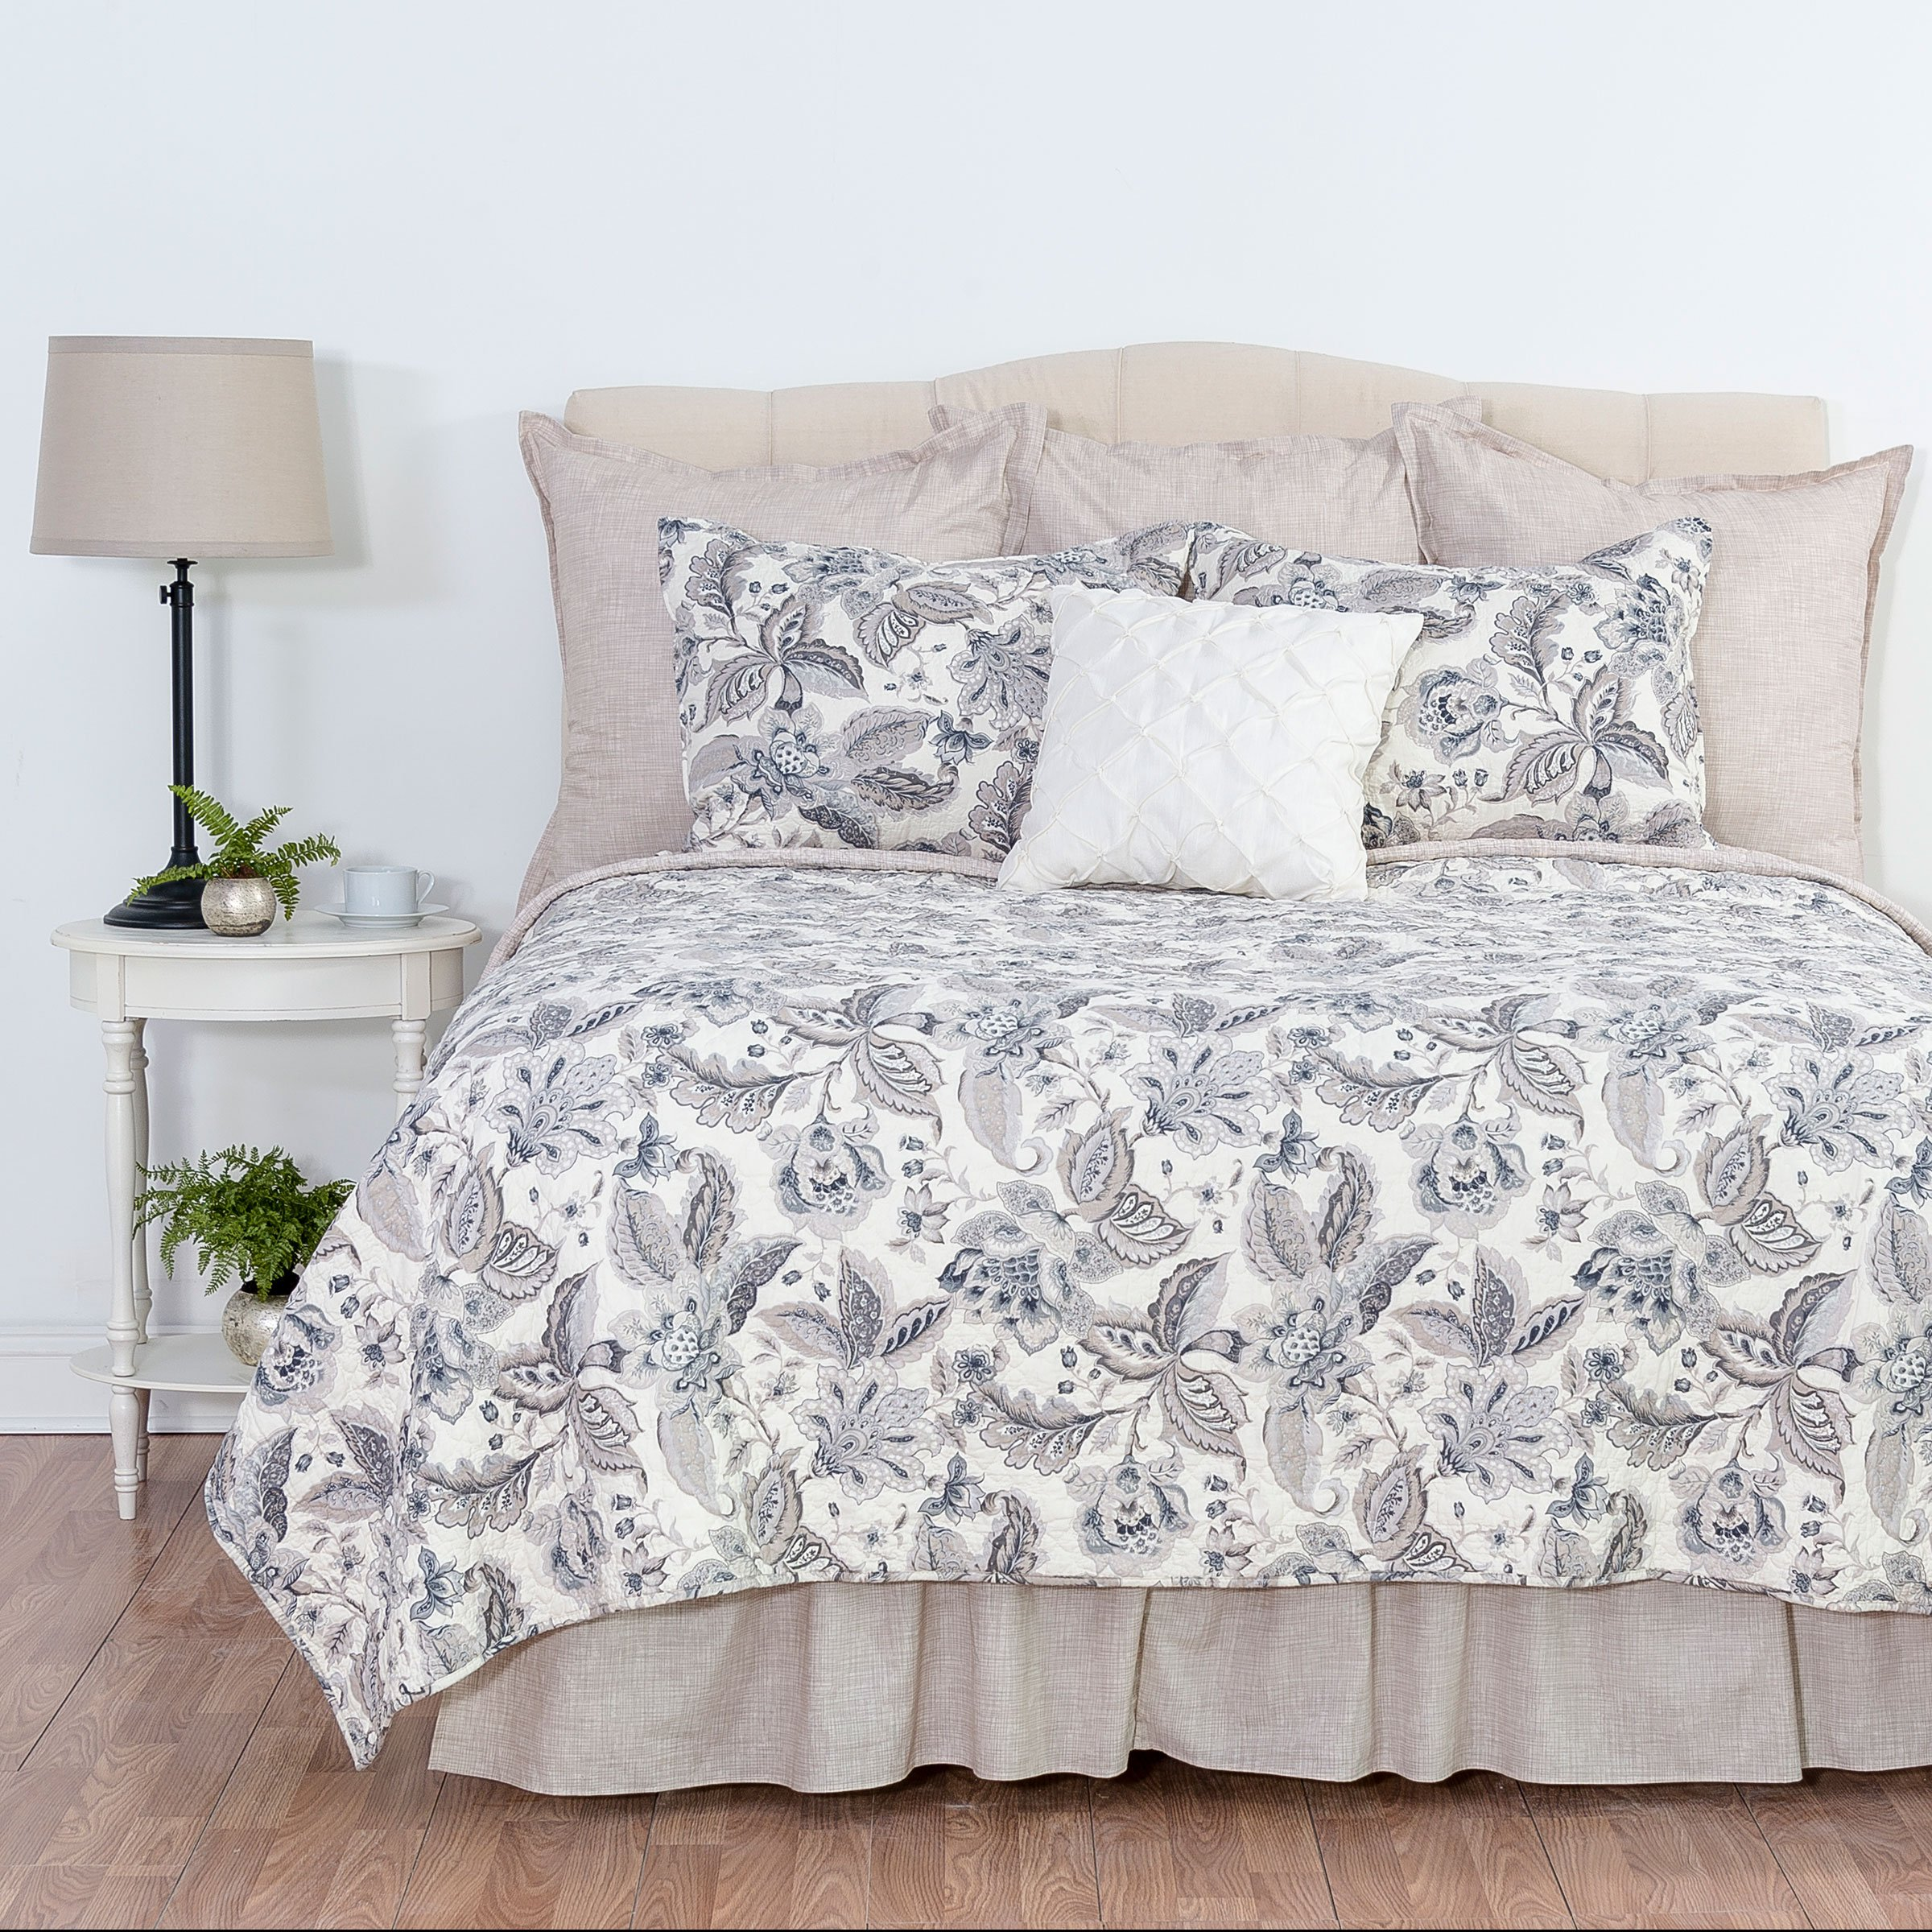 Aurelia King 3 Piece Quilt Set by C&F Home